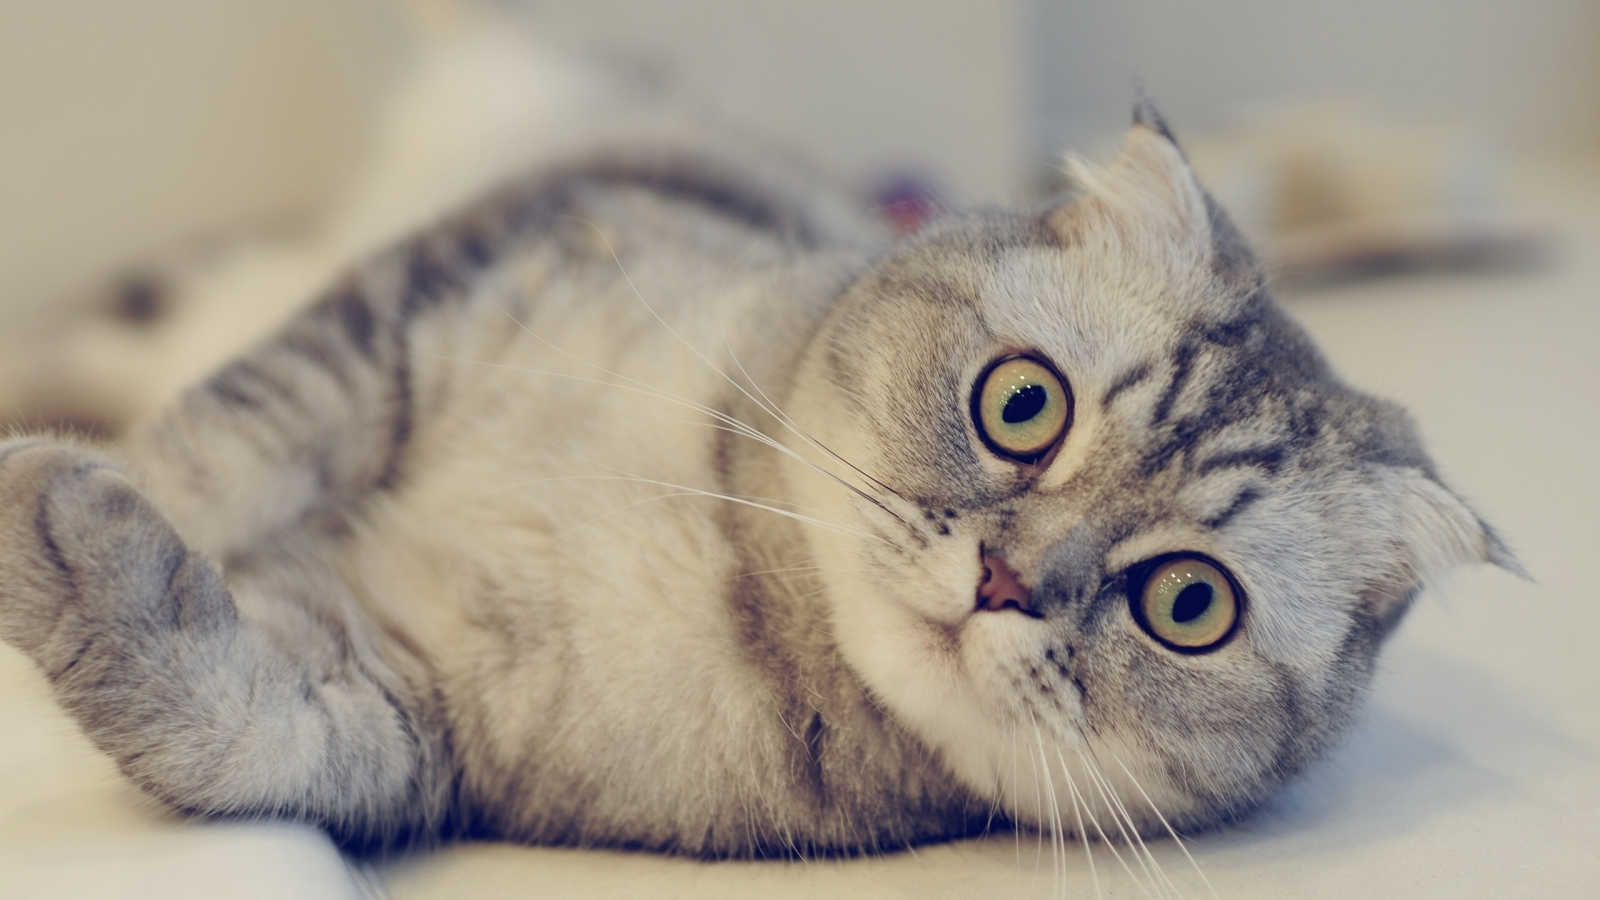 Cute Scottish Fold Cat  for 1600 x 900 HDTV resolution